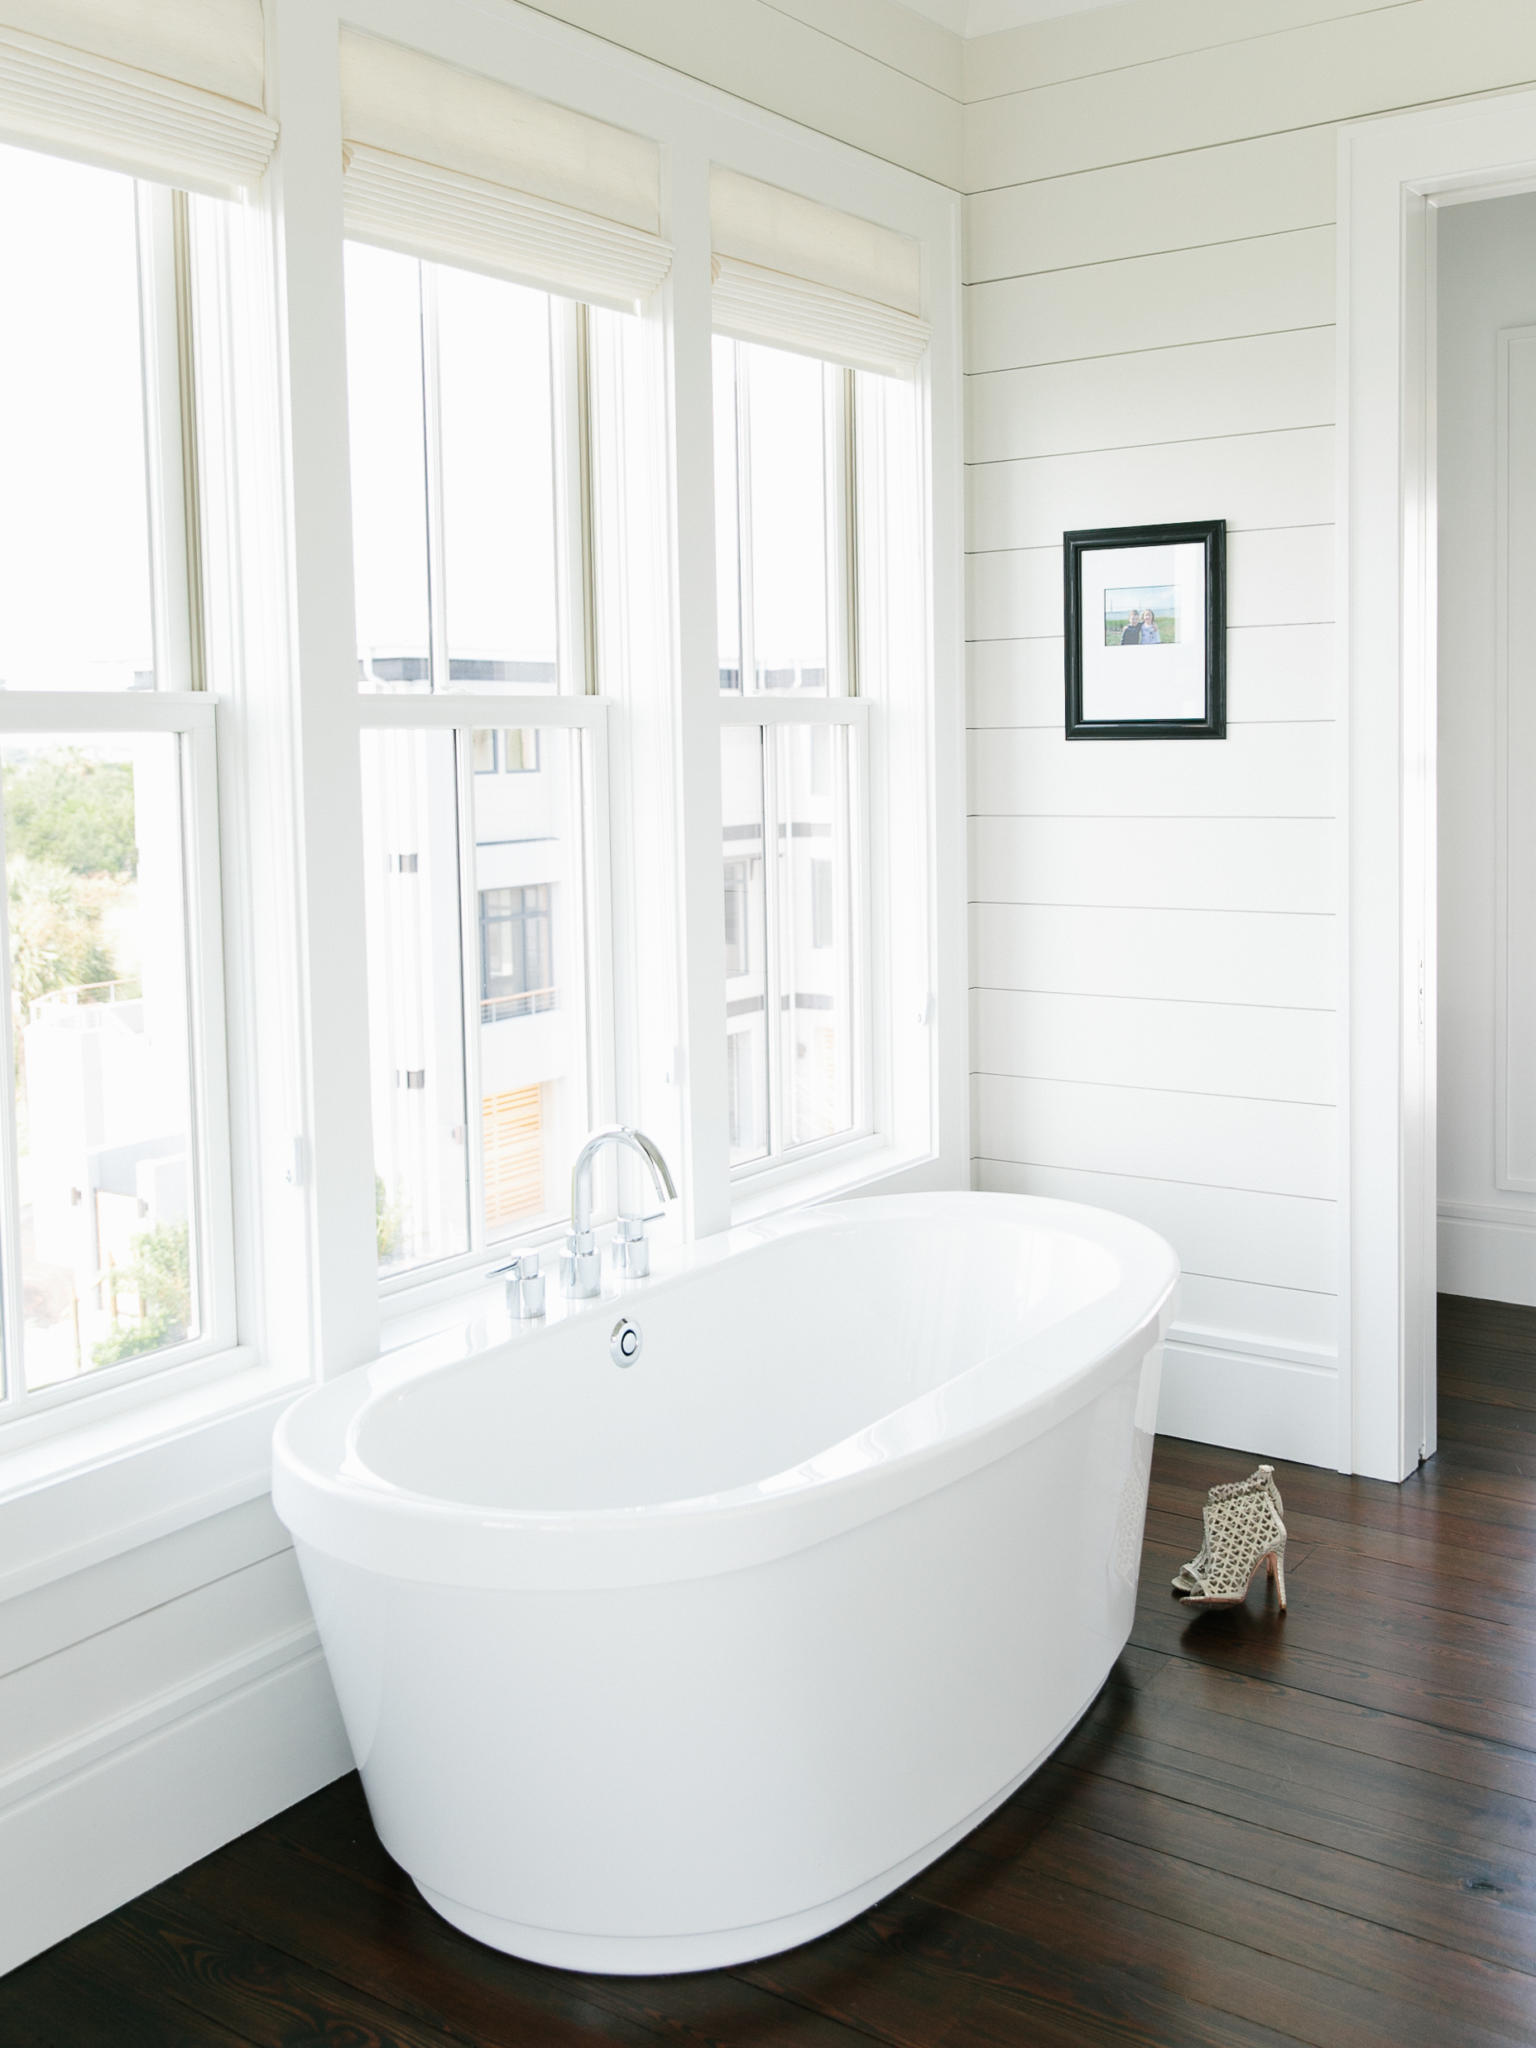 custom bath at new Charleston home